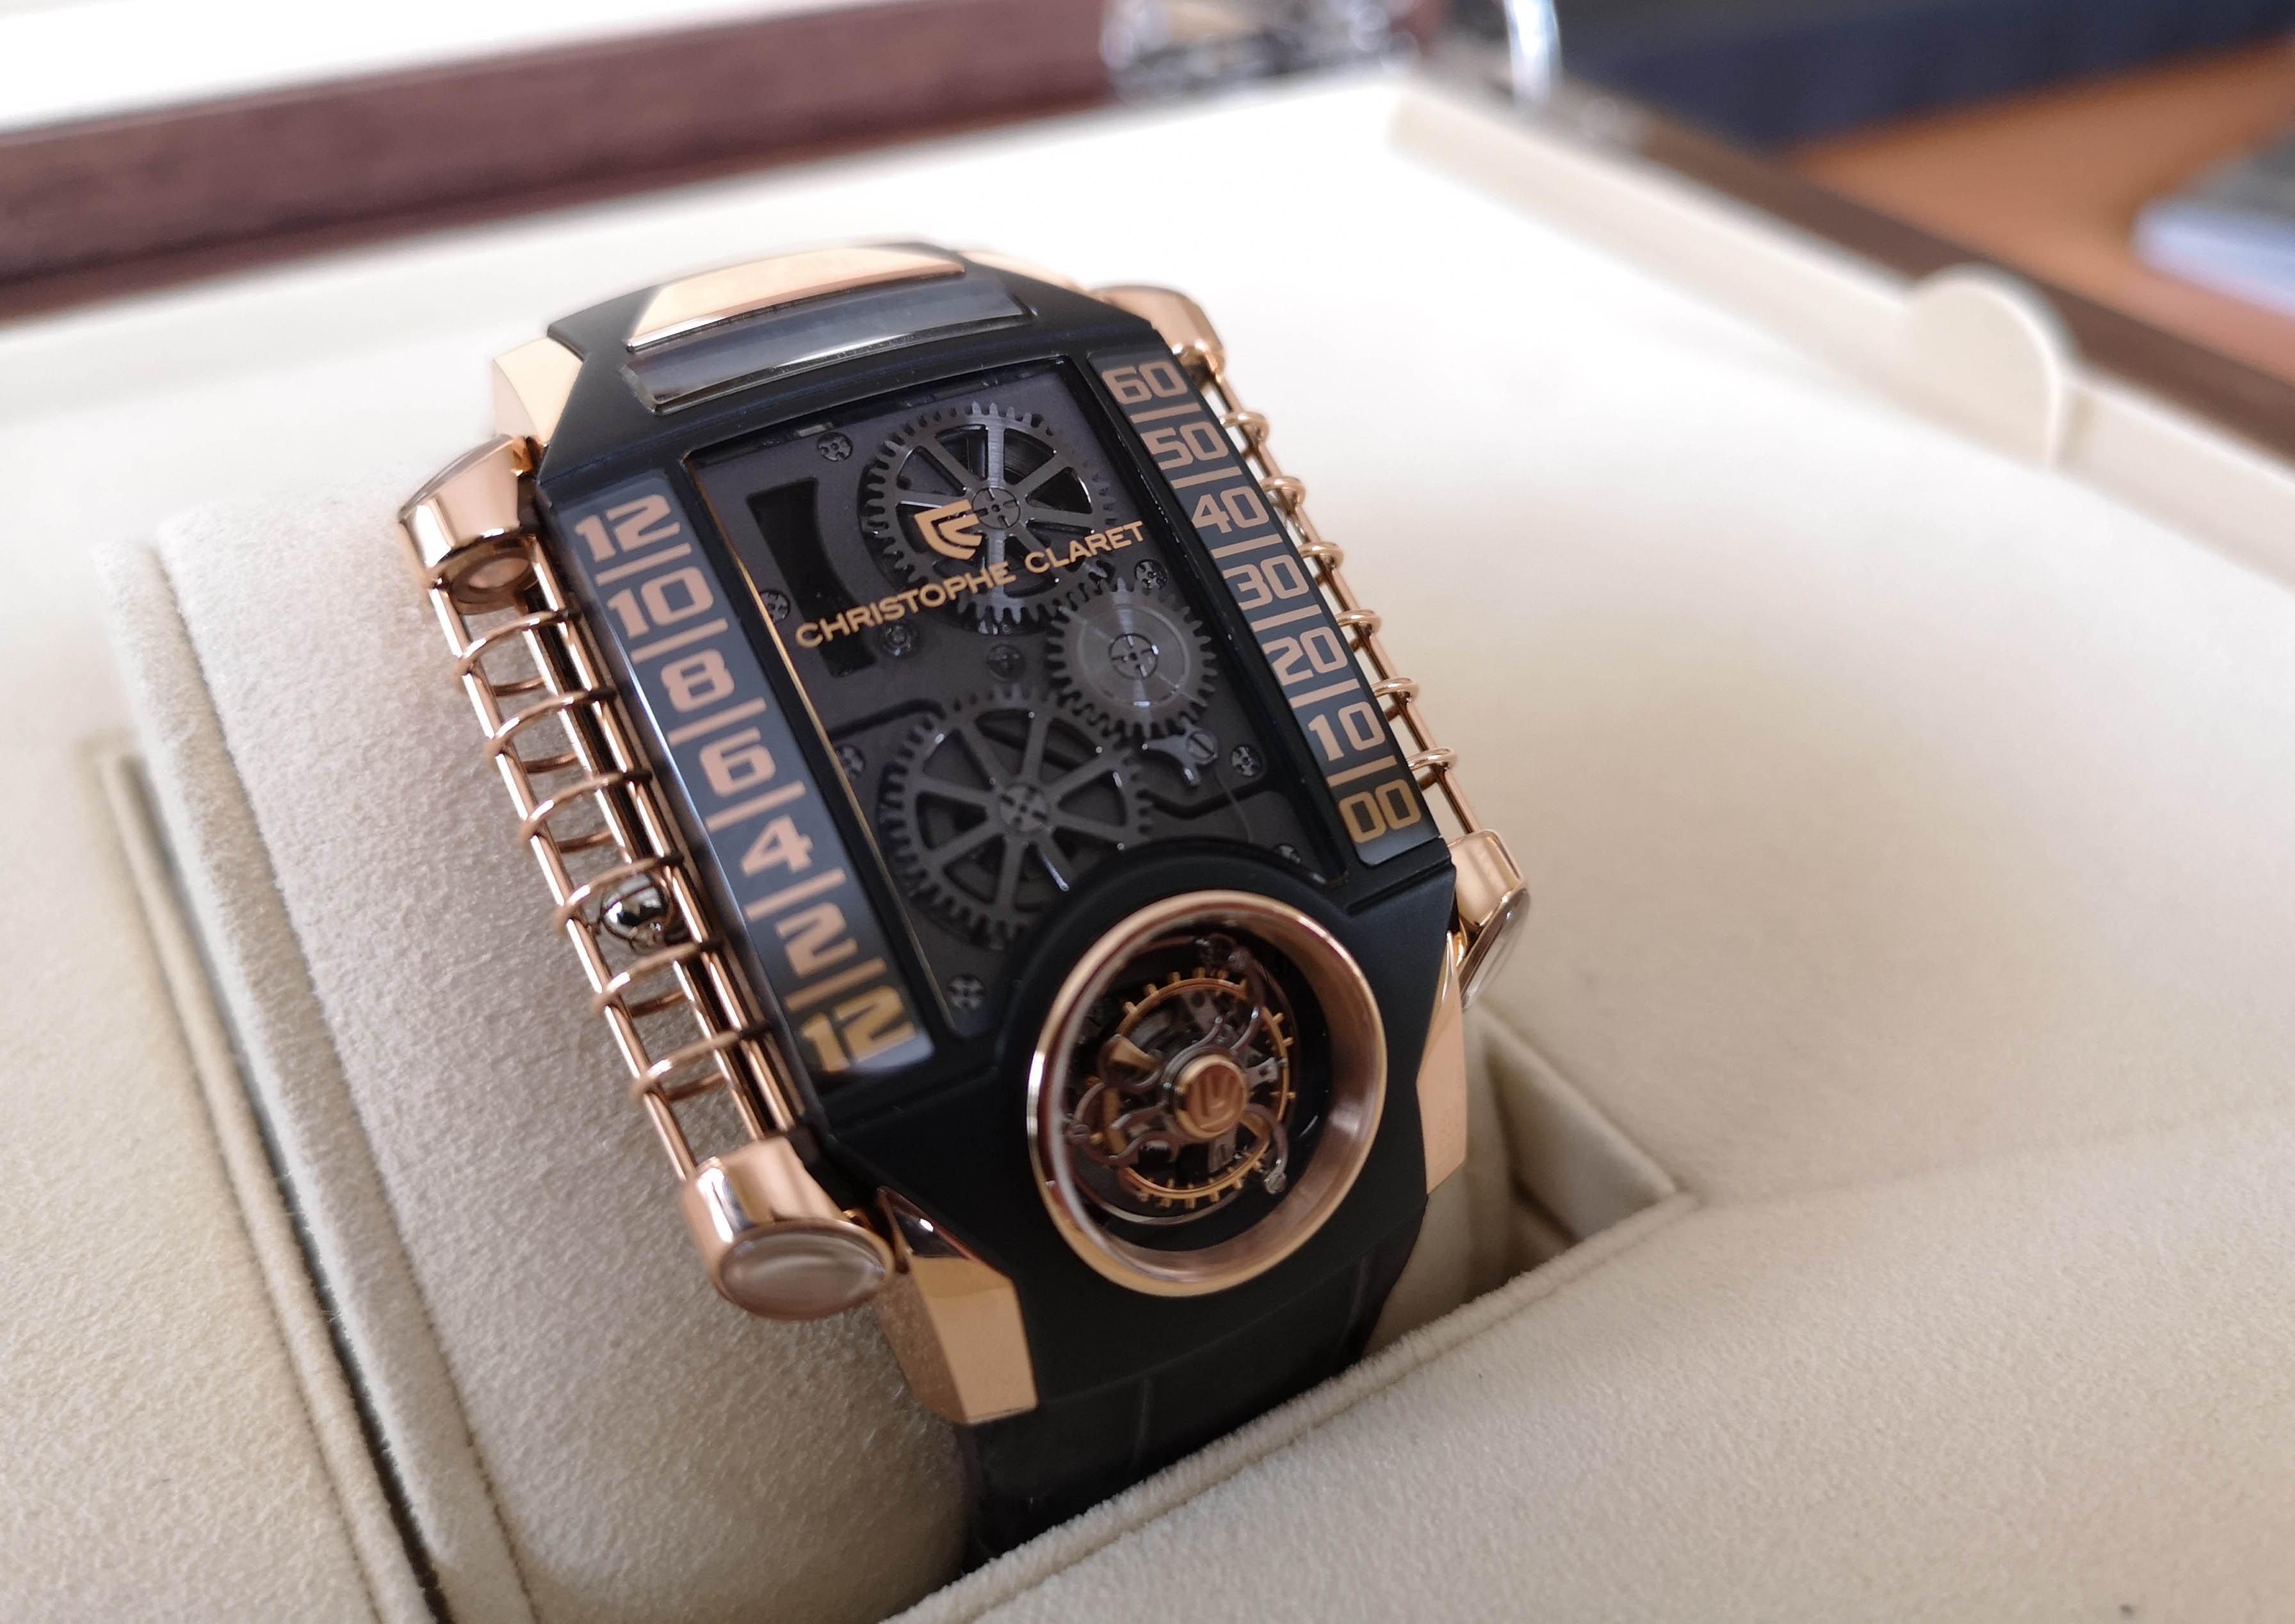 CHRISTOPHE CLARET X-TREM-1 with bitcoin on BitDials